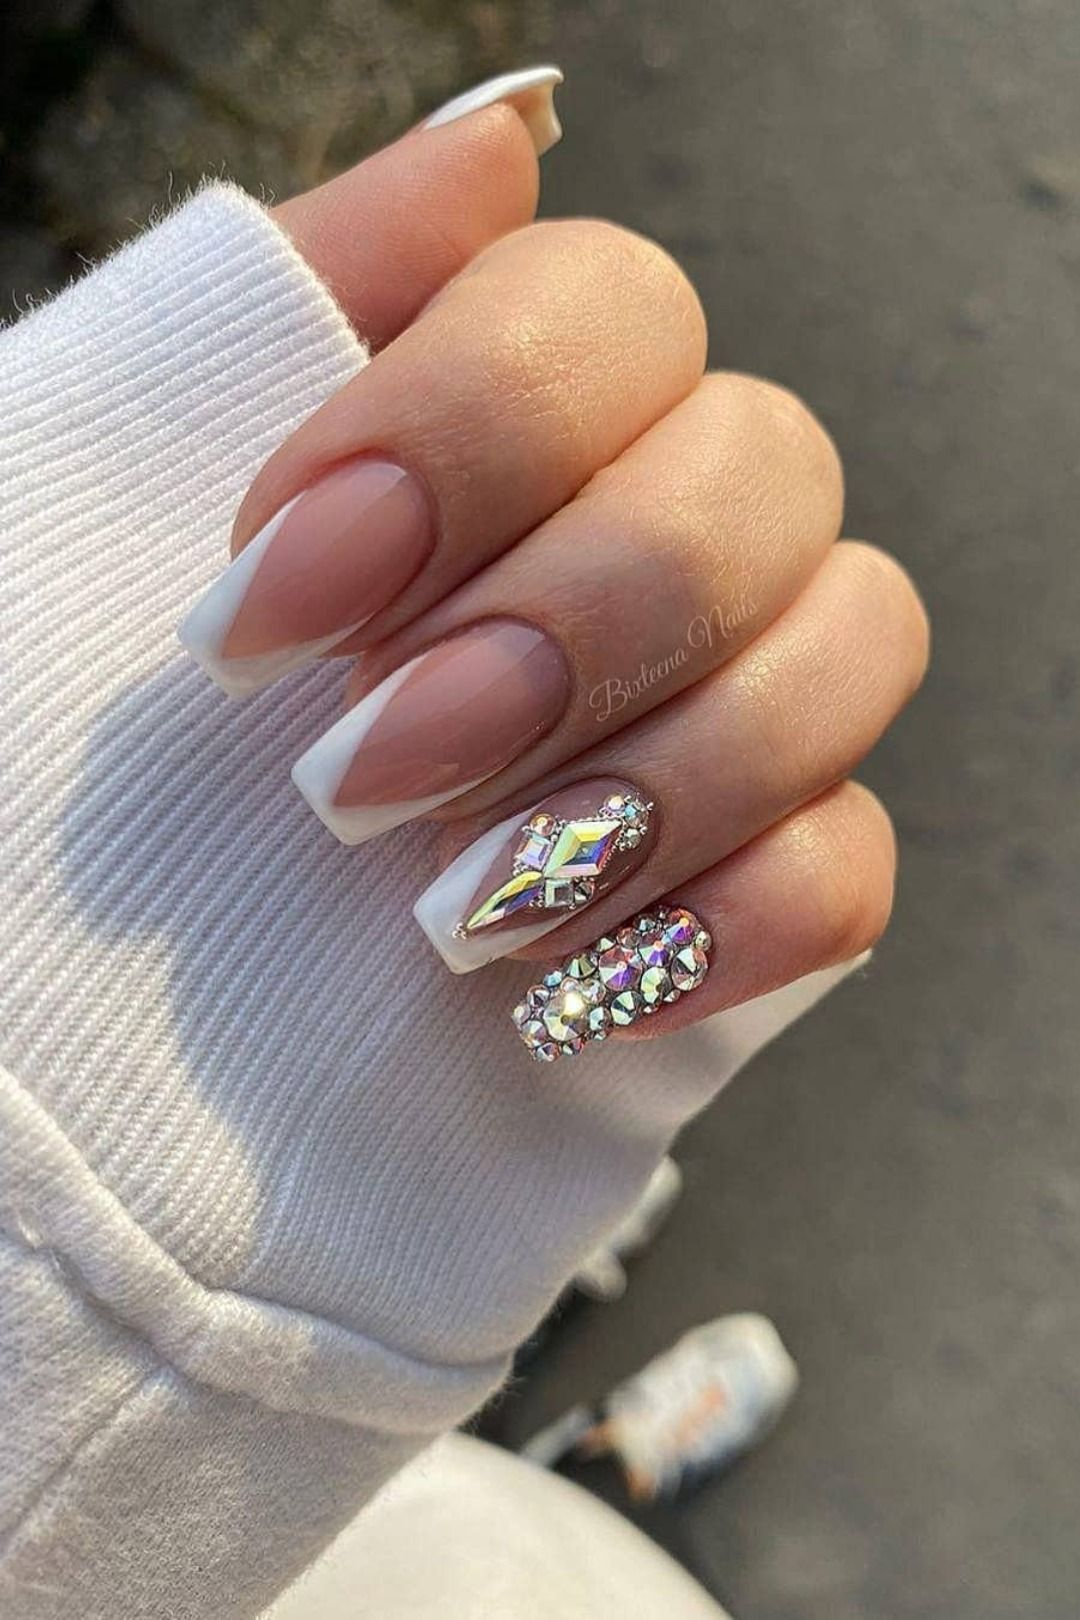 9 Stunning Modern French Manicure Ideas In 2020 With Images